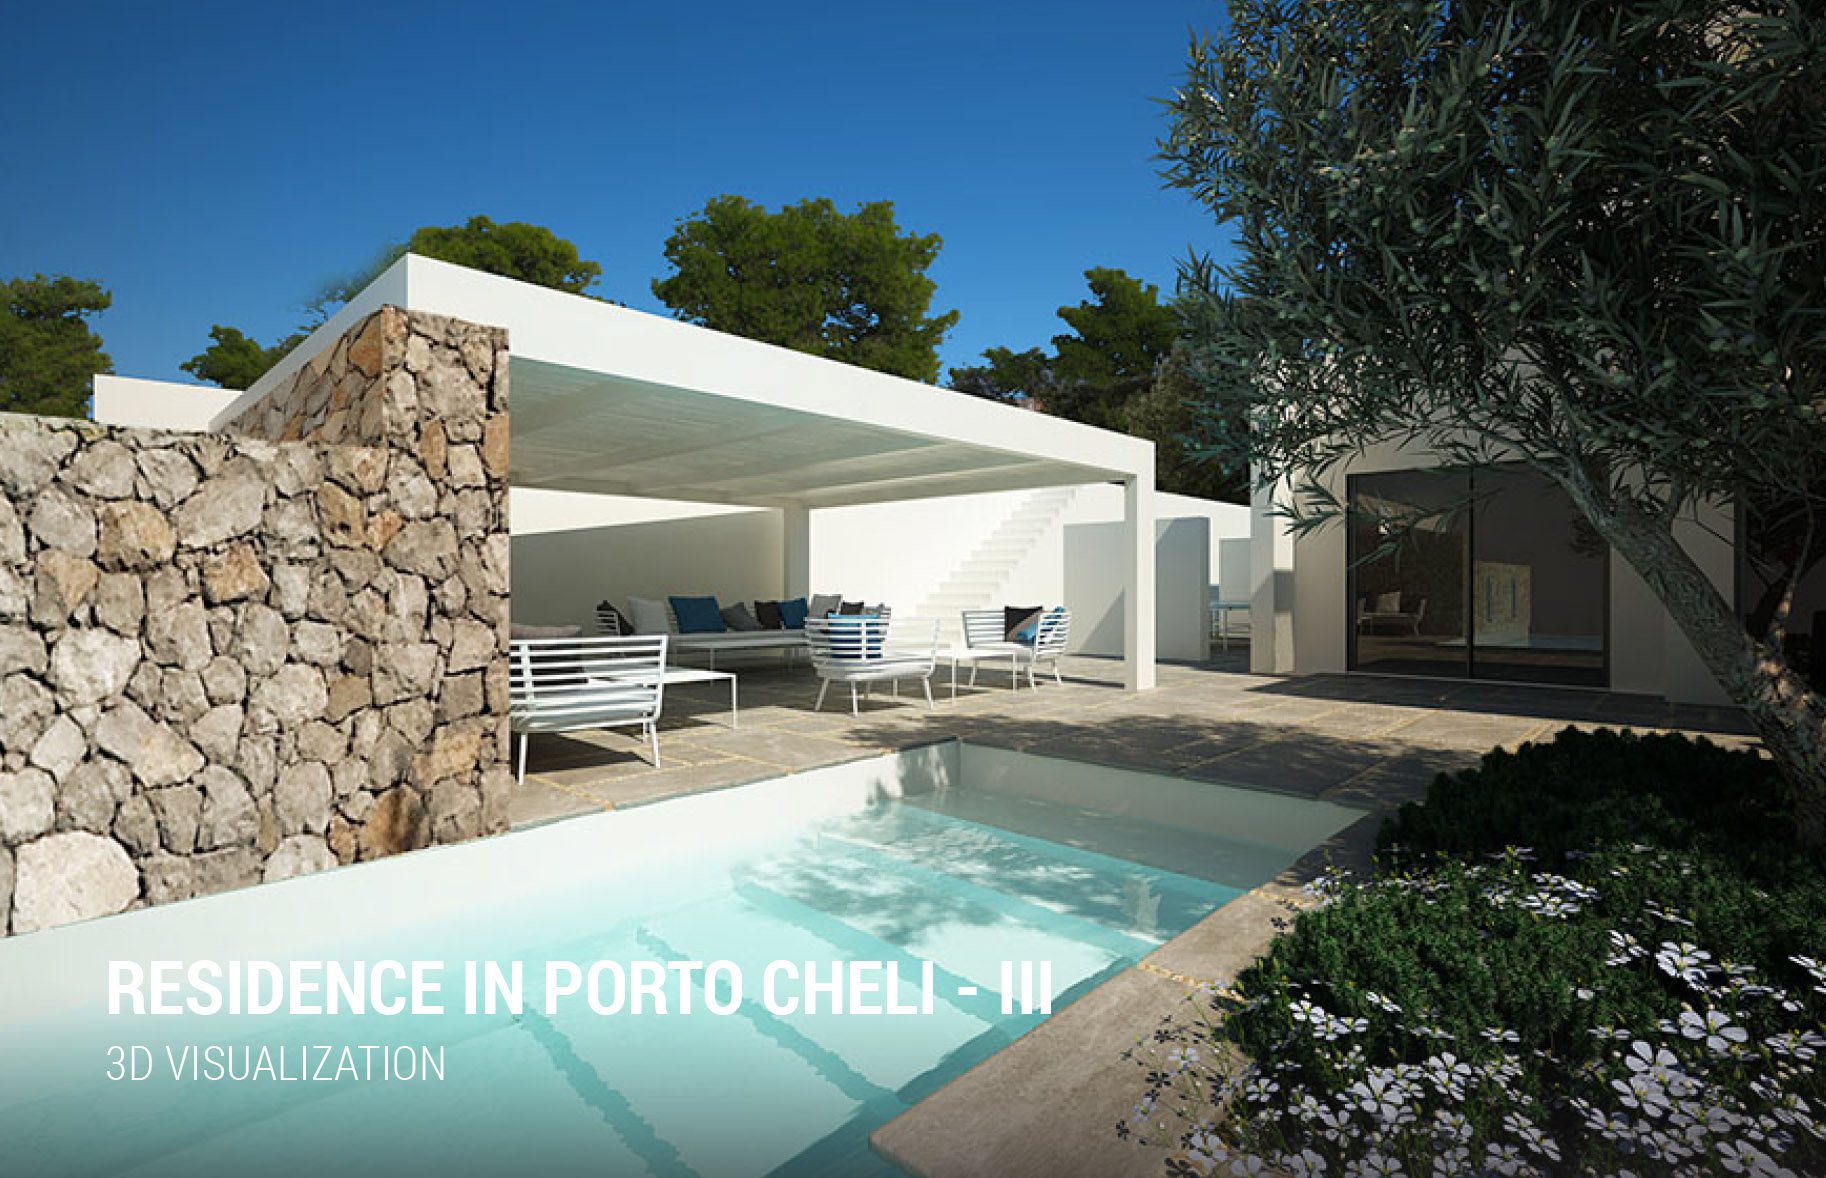 Schema Dimitra Chrona designer, creative director, architectural, 3D visualization, 3D Rendering, branding websites, digital, graphic design, interior design, real estate, luxury property, staging, museum, virtual, art, brochures, exhibitions, logotype, logo, Canada Quebec Montreal Athens Greece schema design porto cheli residence iii large over.jpg